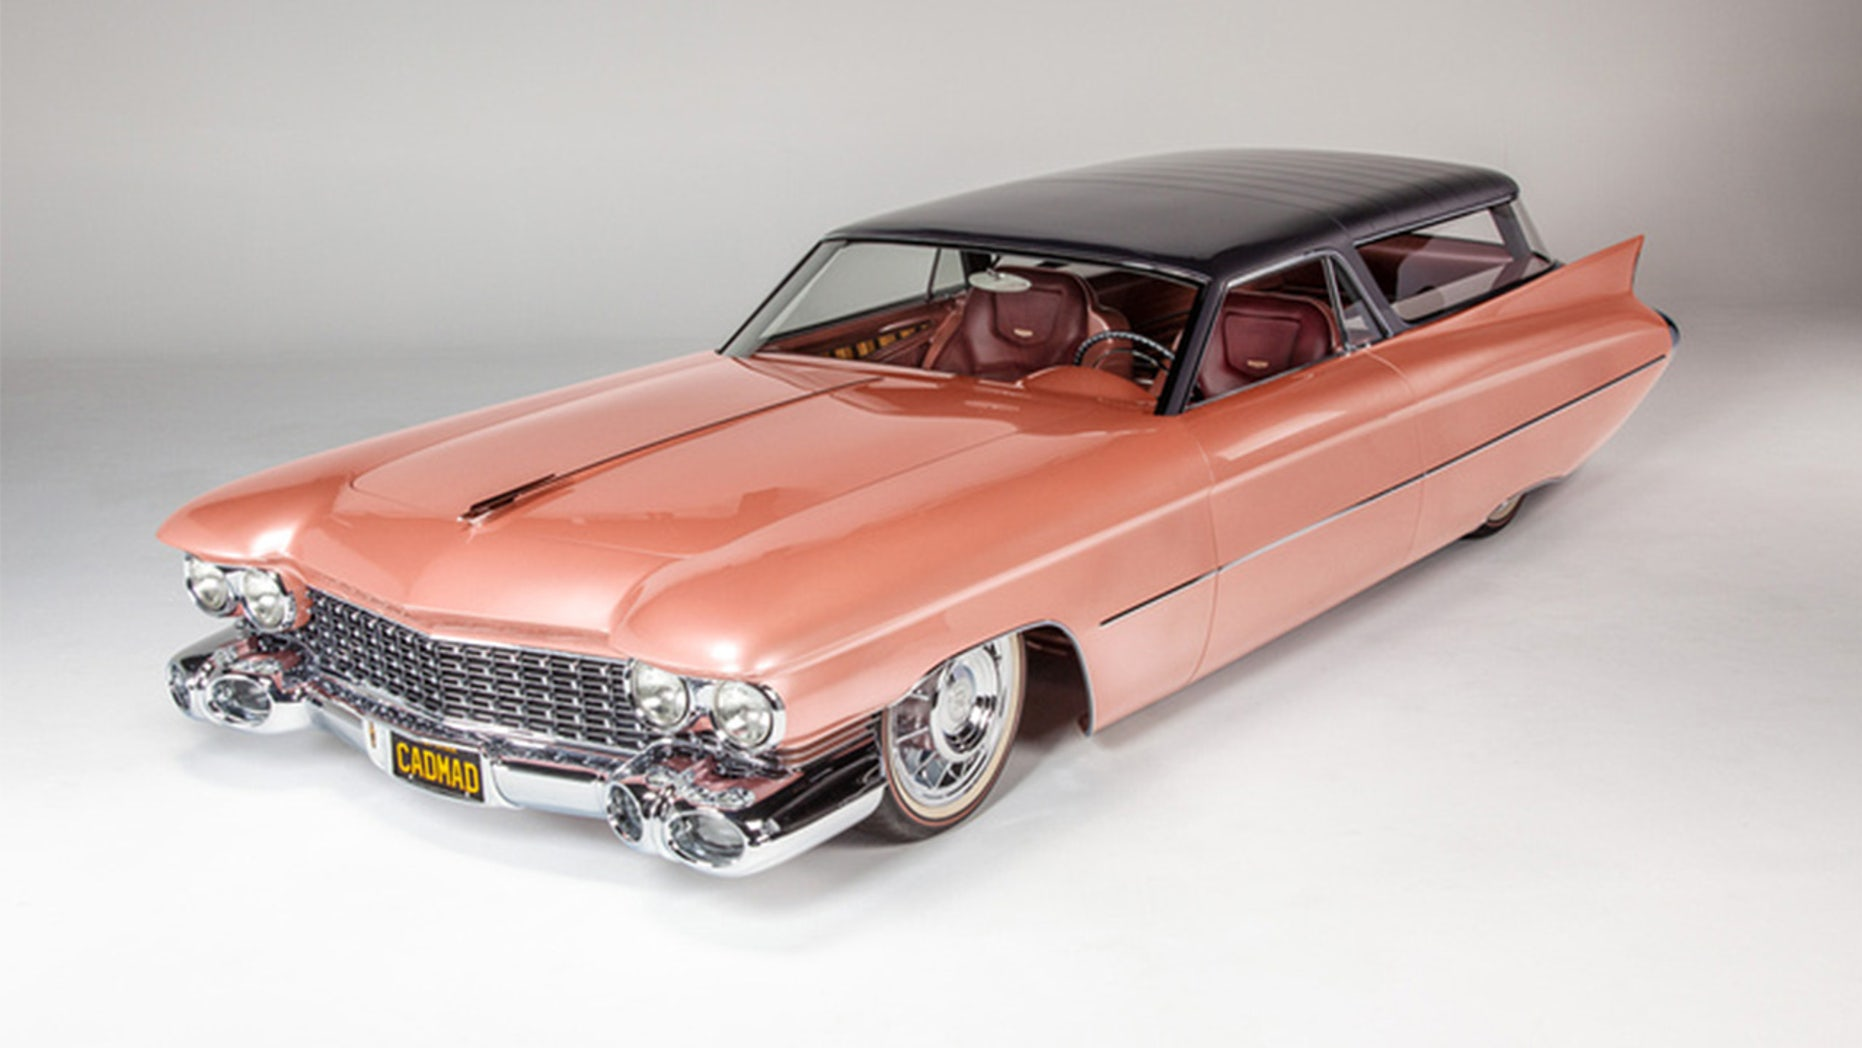 1959 Cadillac station wagon wins Ridler Award for best hot